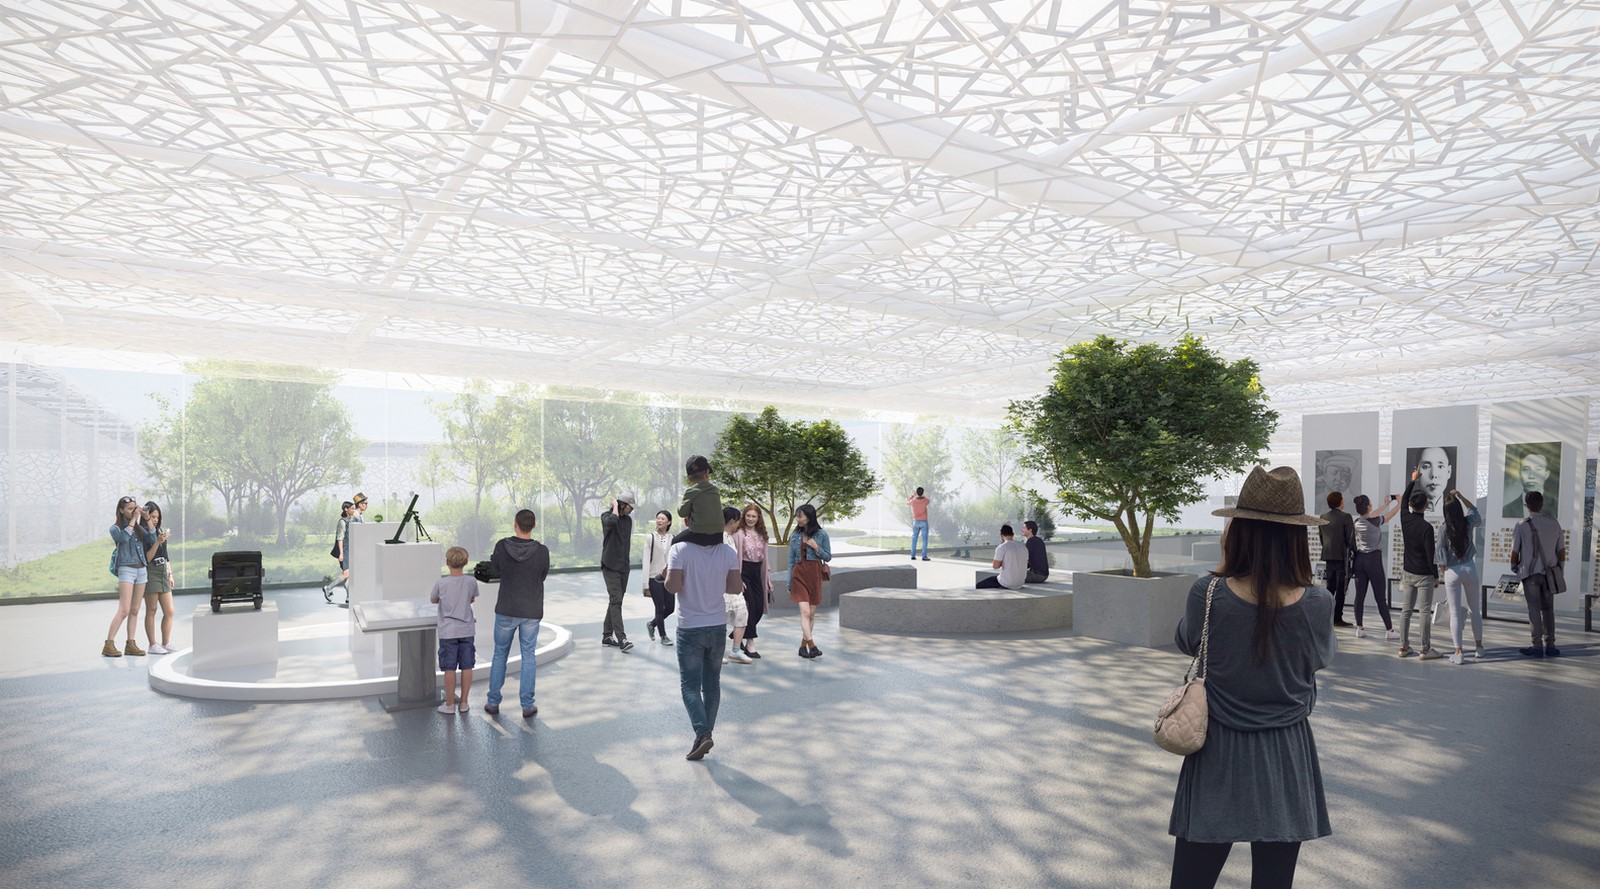 Shenzhen exhibition complex with transparent facade designed by Sou Fujimoto - Sheet5